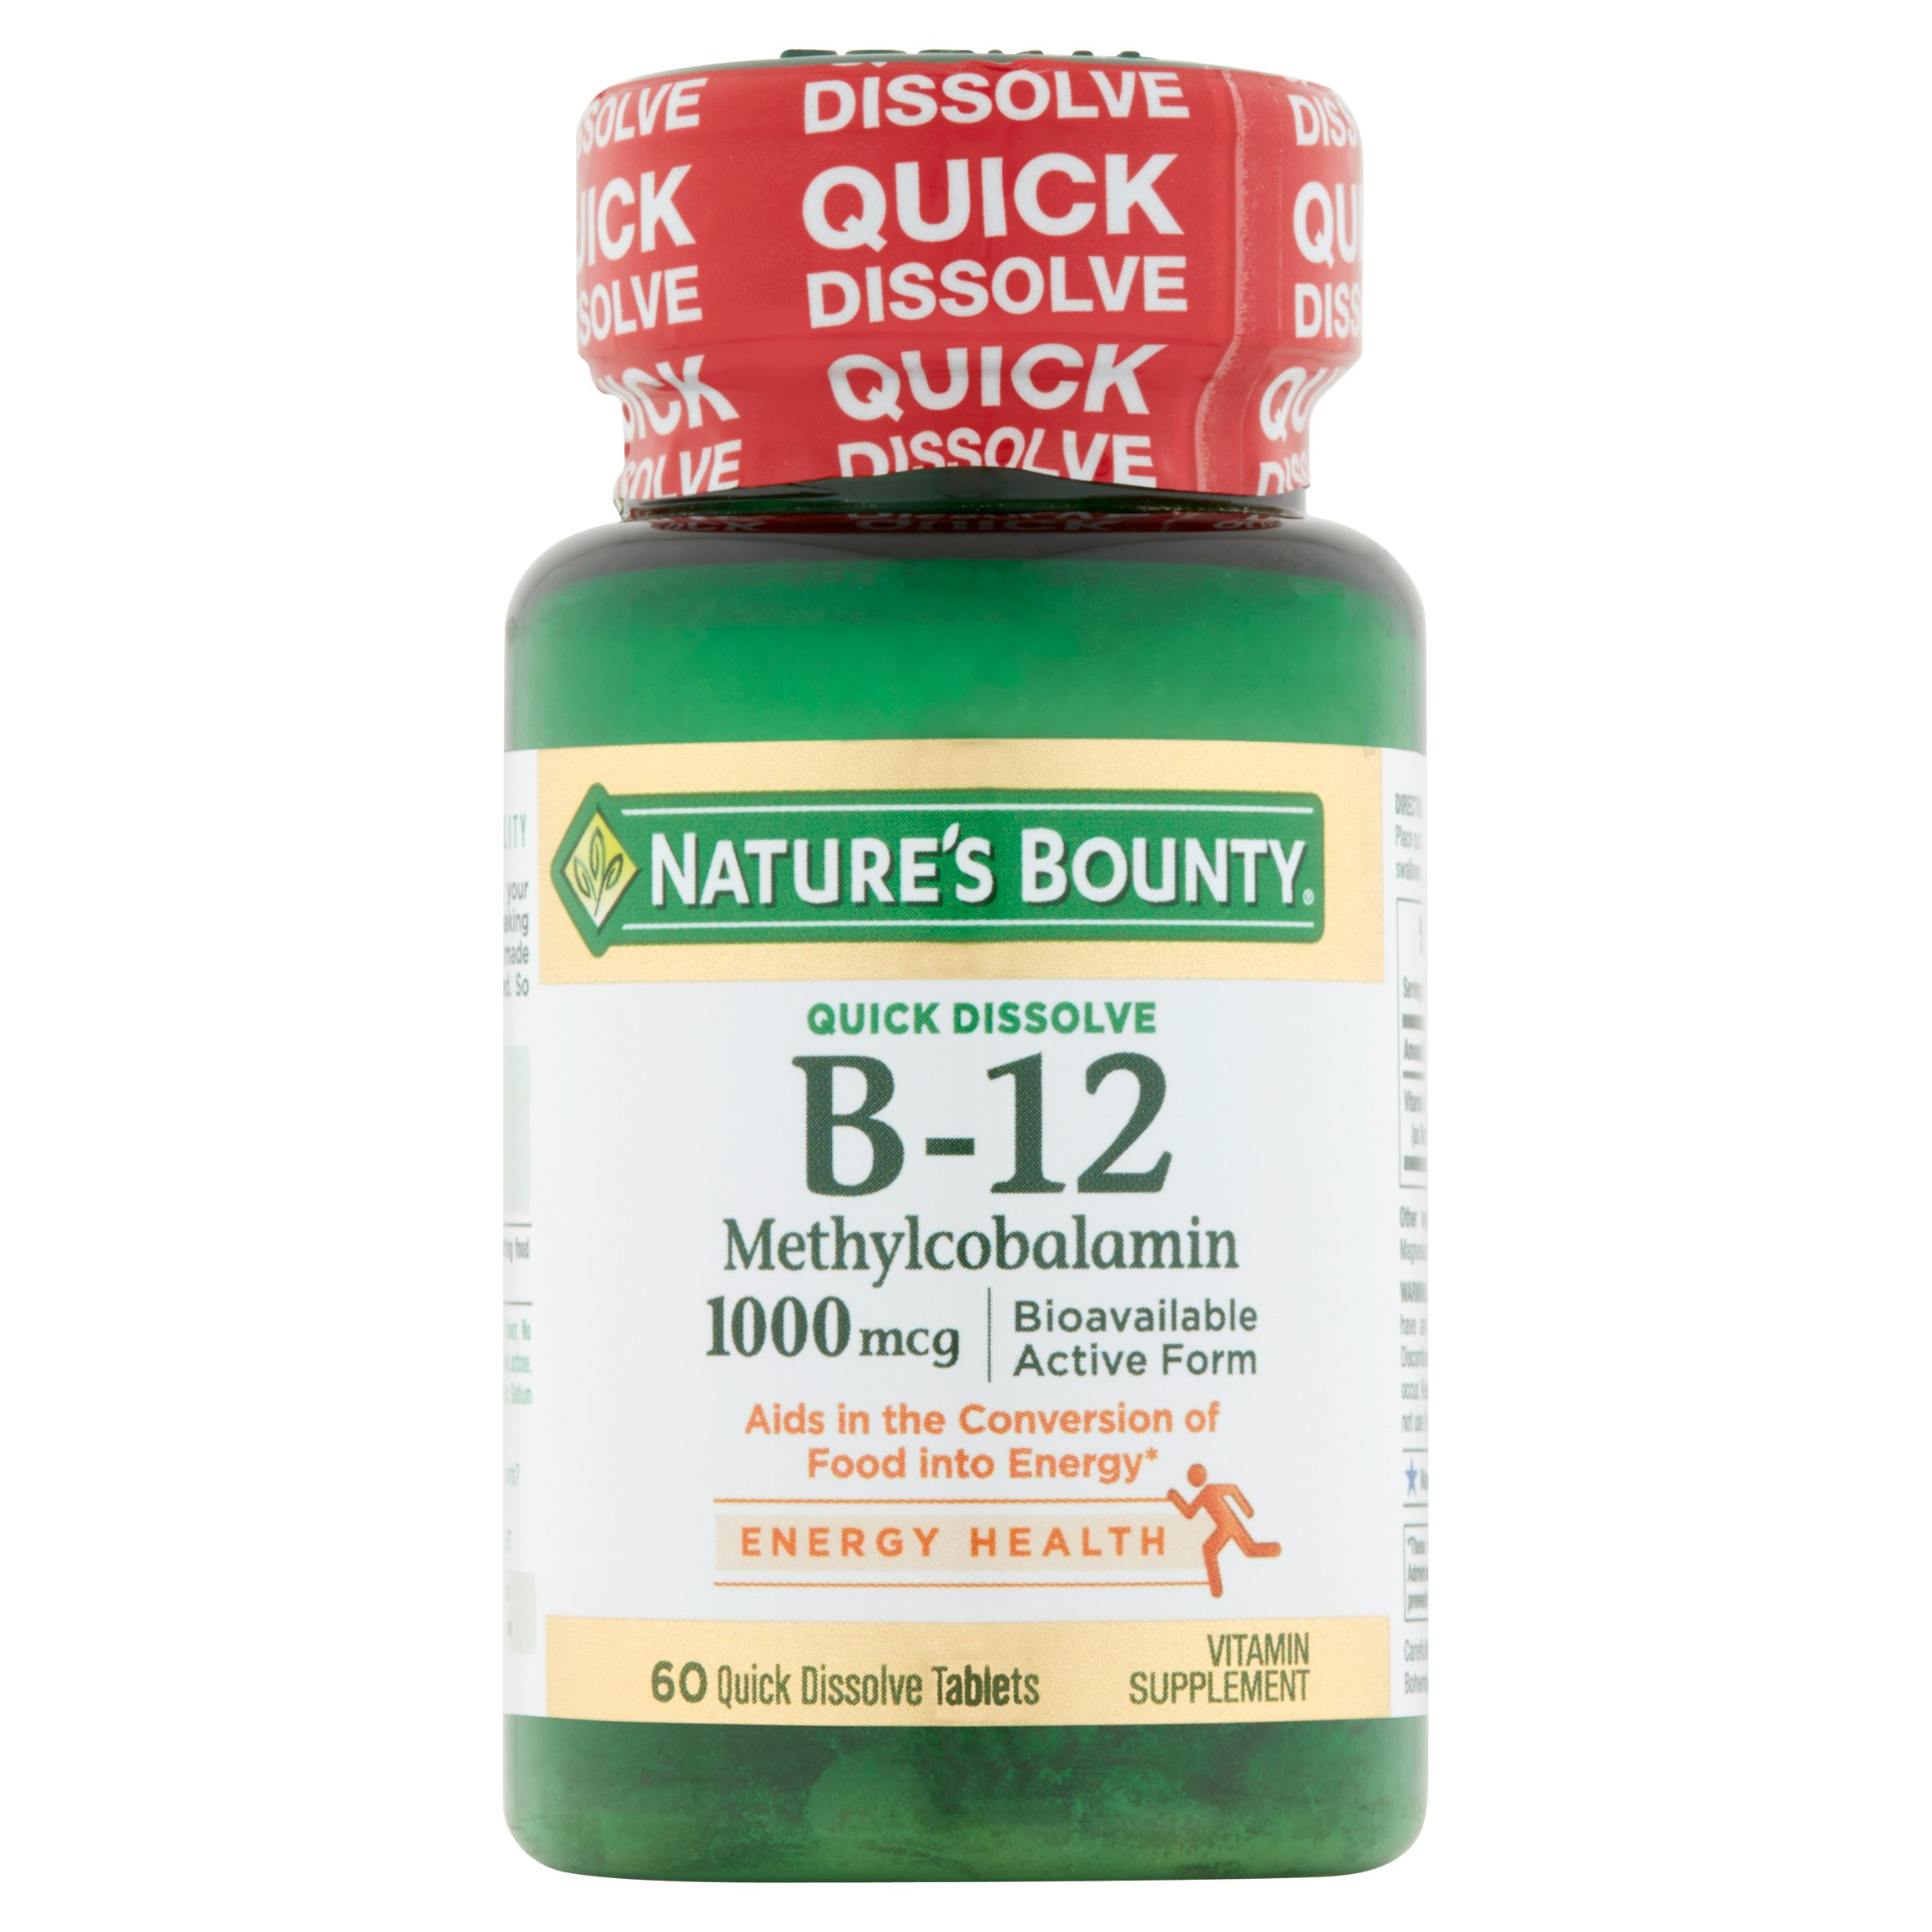 Nature's Bounty B-12 Methylcobalamin 1000 Mcg Quick Dissolve Tablet, 60 Ct